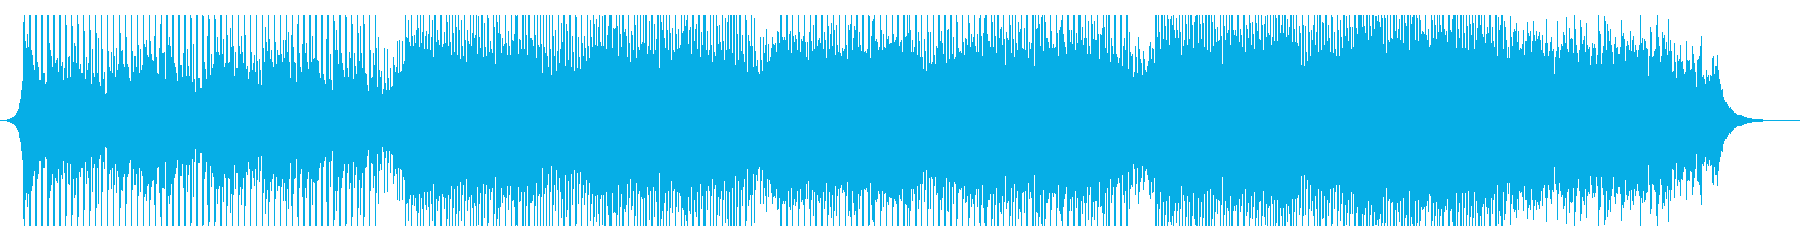 Successful Construction's reproduced waveform